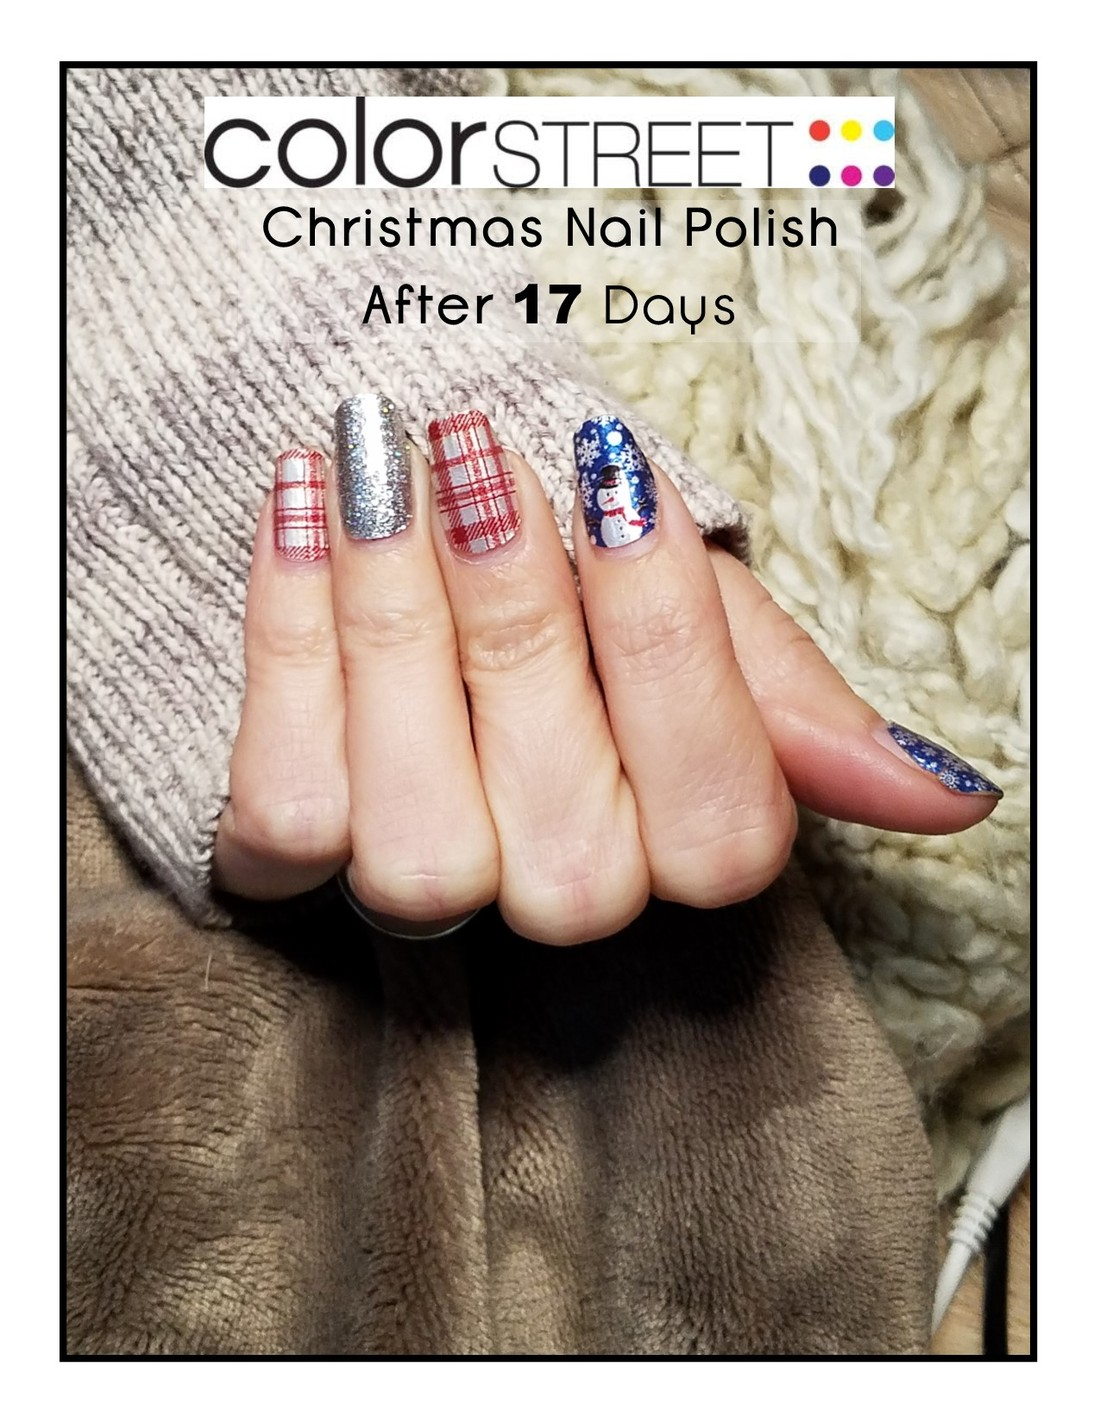 Color Street Nails The Longest Lasting Nail Polish - Direct Sales ...